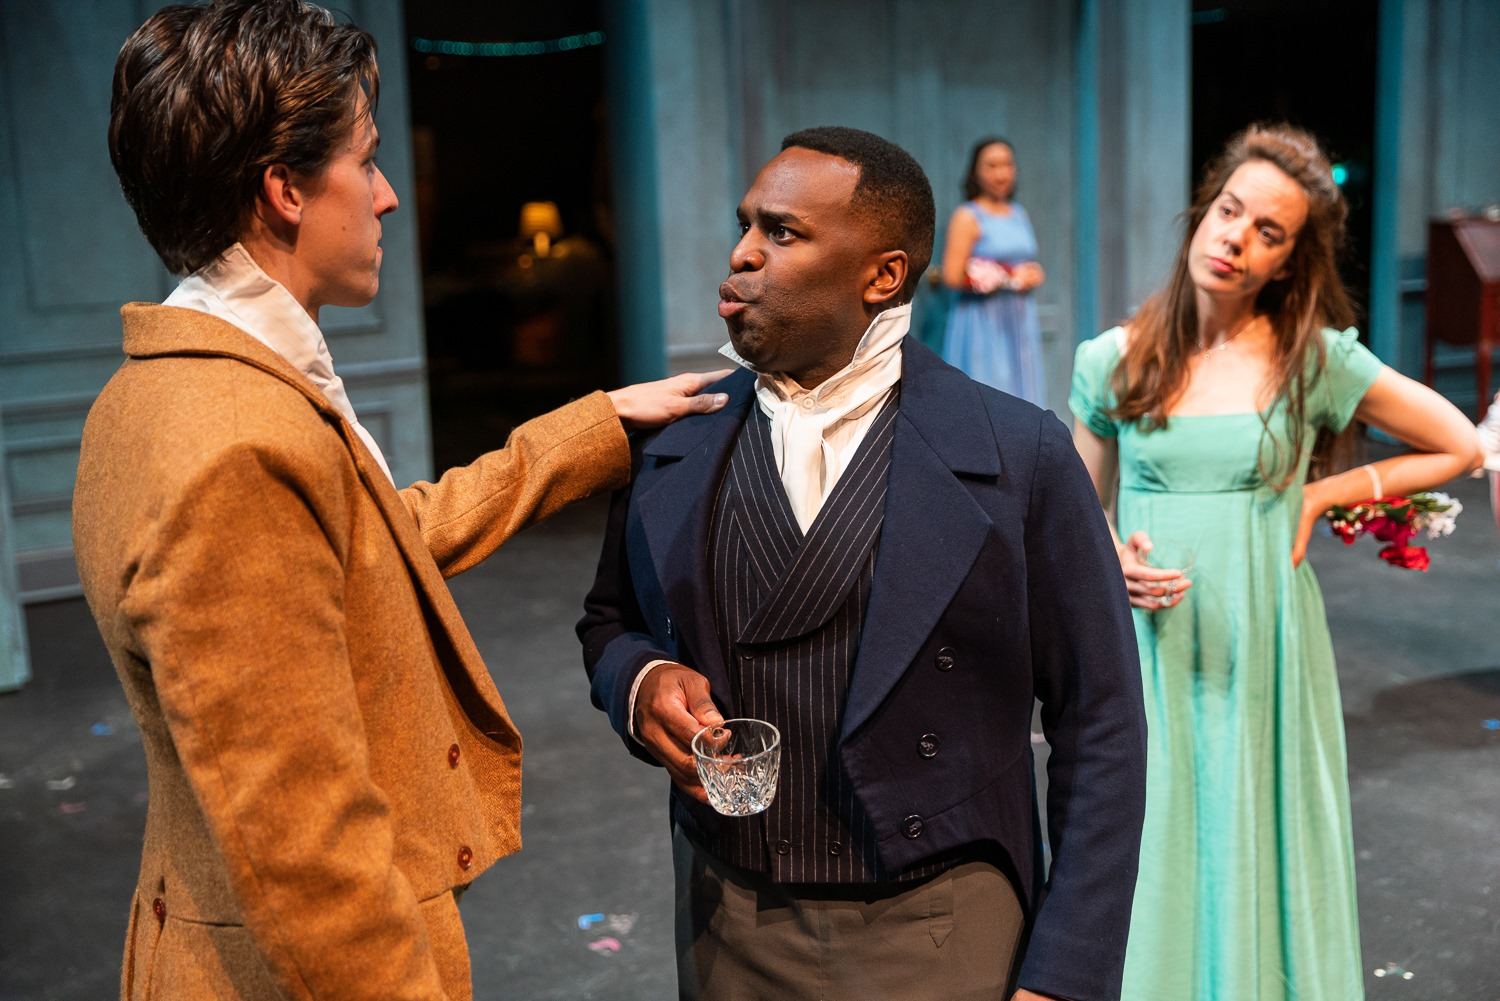 Louis Reyes McWilliams (Bingley), Omar Robinson (Darcy), Lydia Barnett-Mulligan (Lizzy). Photo by Nile Scott Studios